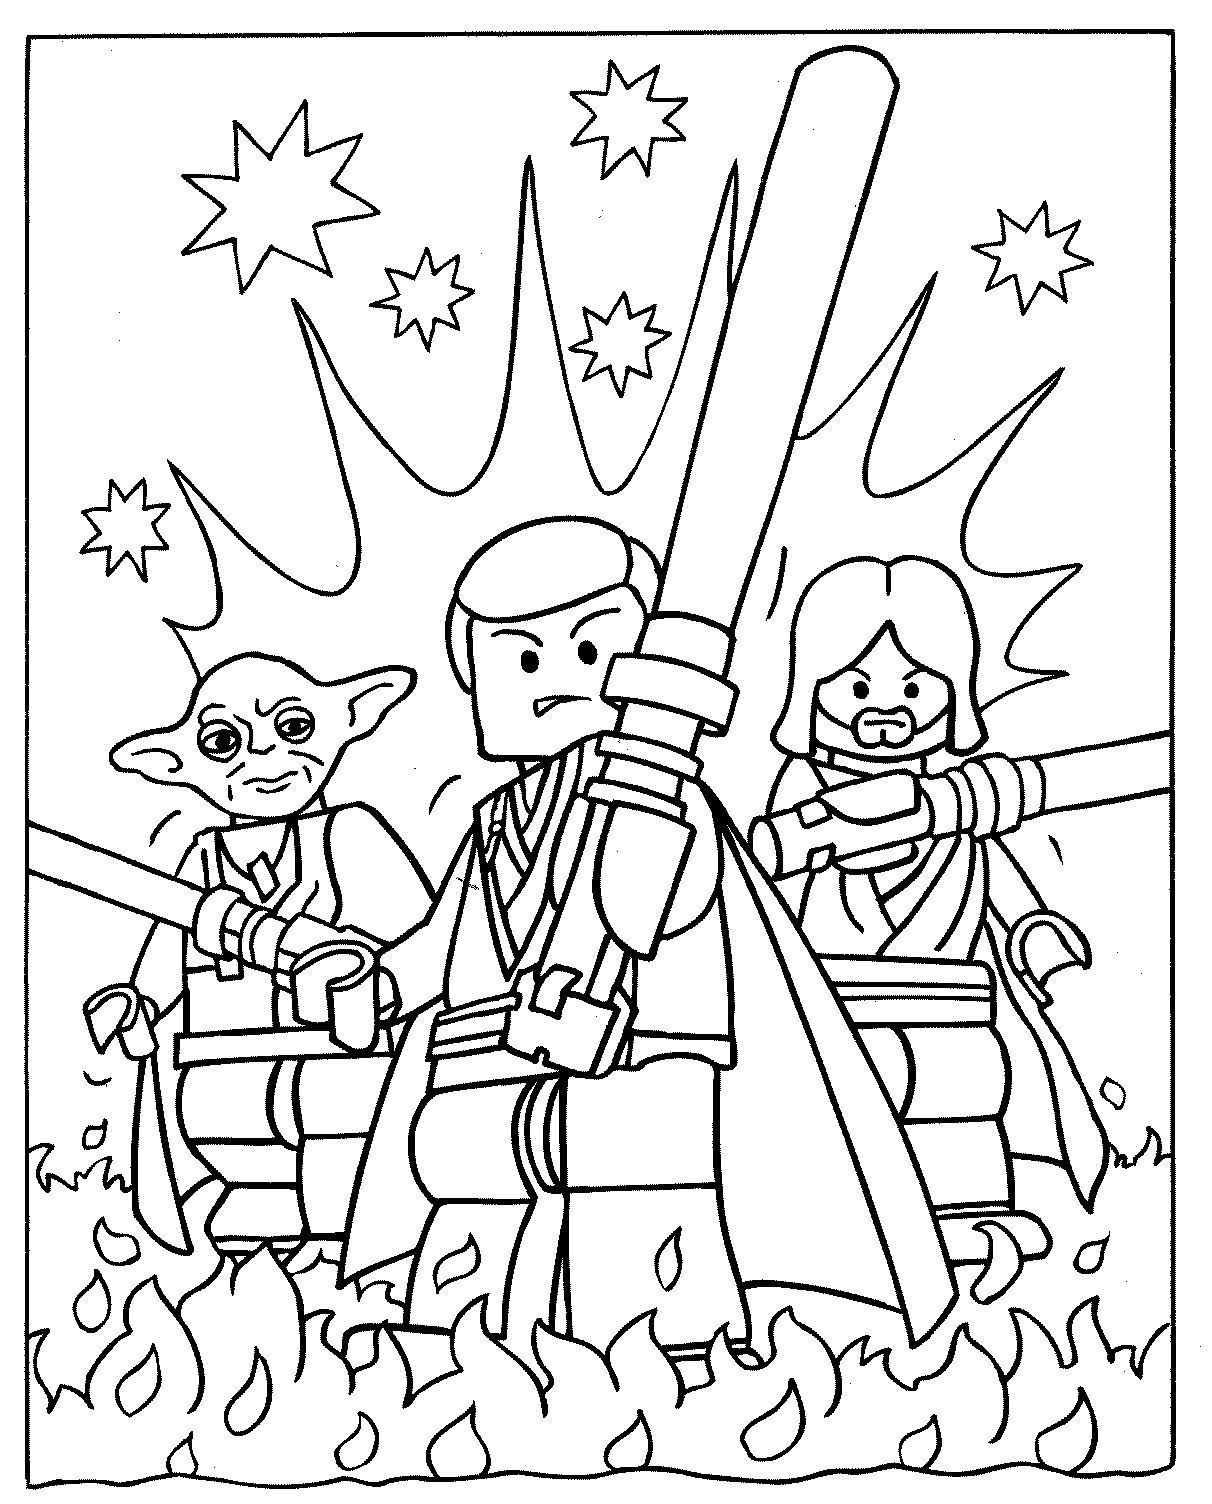 stars wars coloring pages star wars coloring pages 2018 dr odd pages wars coloring stars